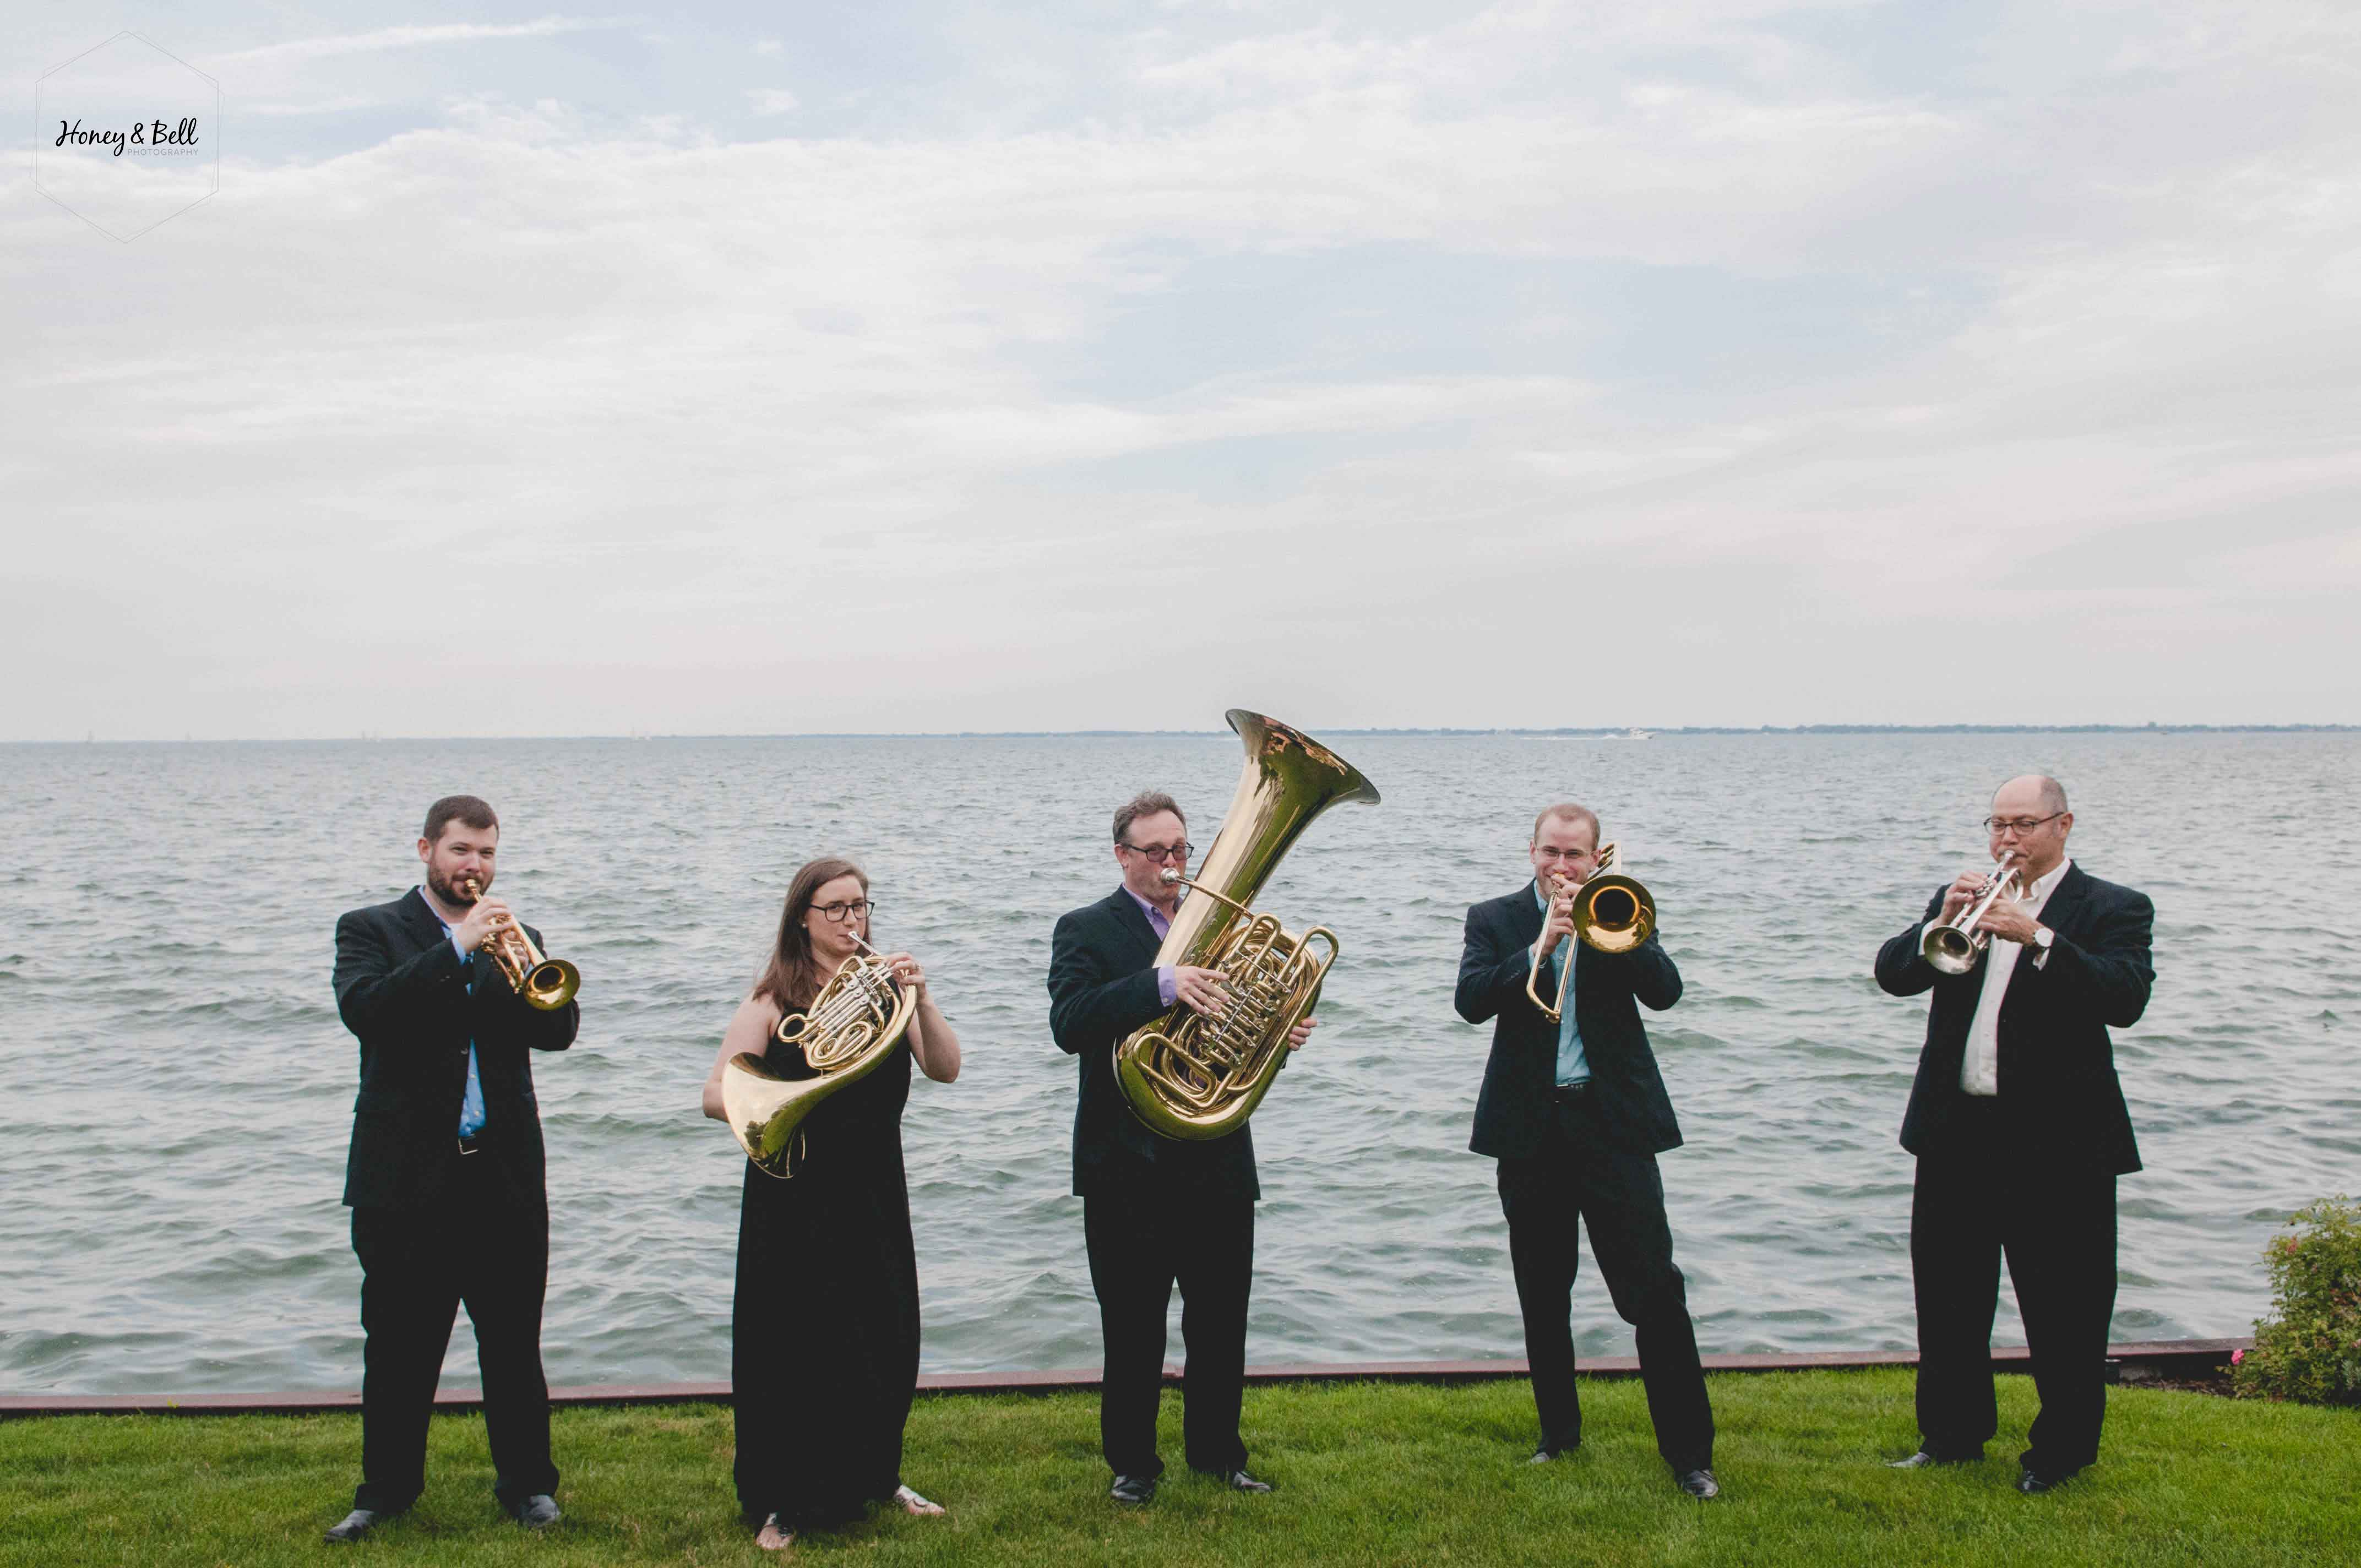 north-of-canada-brass-quintet-detroit-michigan-grosse-pointe-band-photographer-08